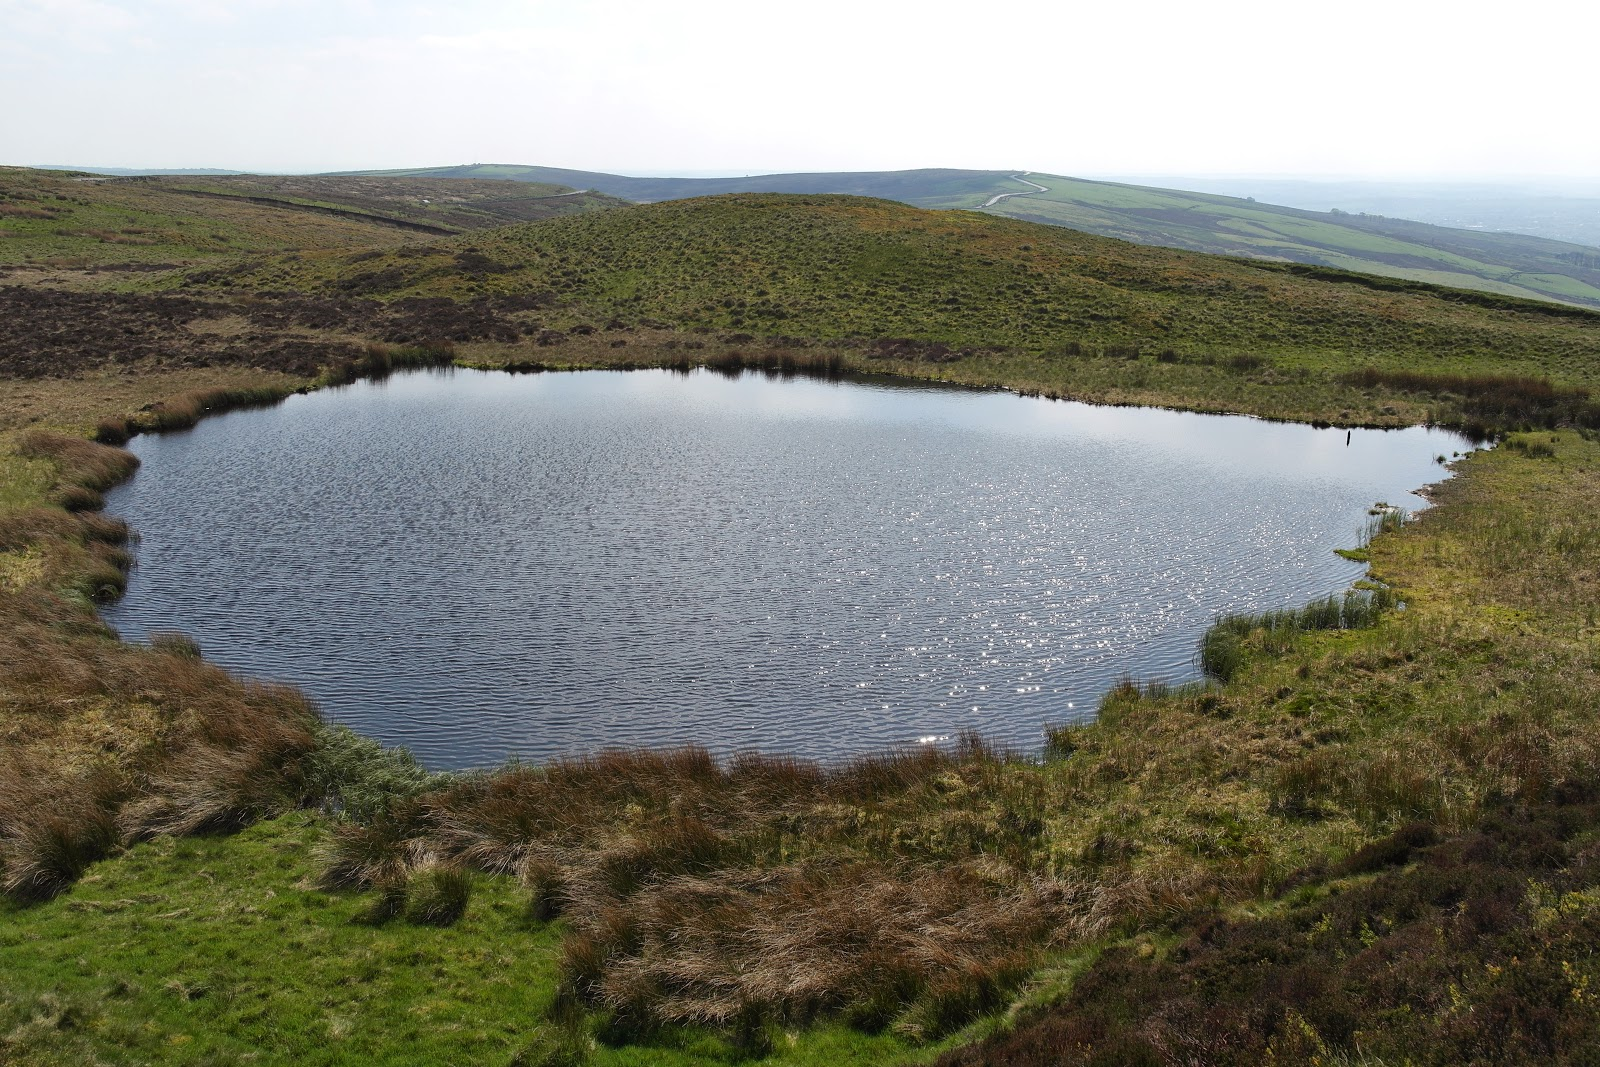 Mermaid's Pool, near Leek, Staffordshire